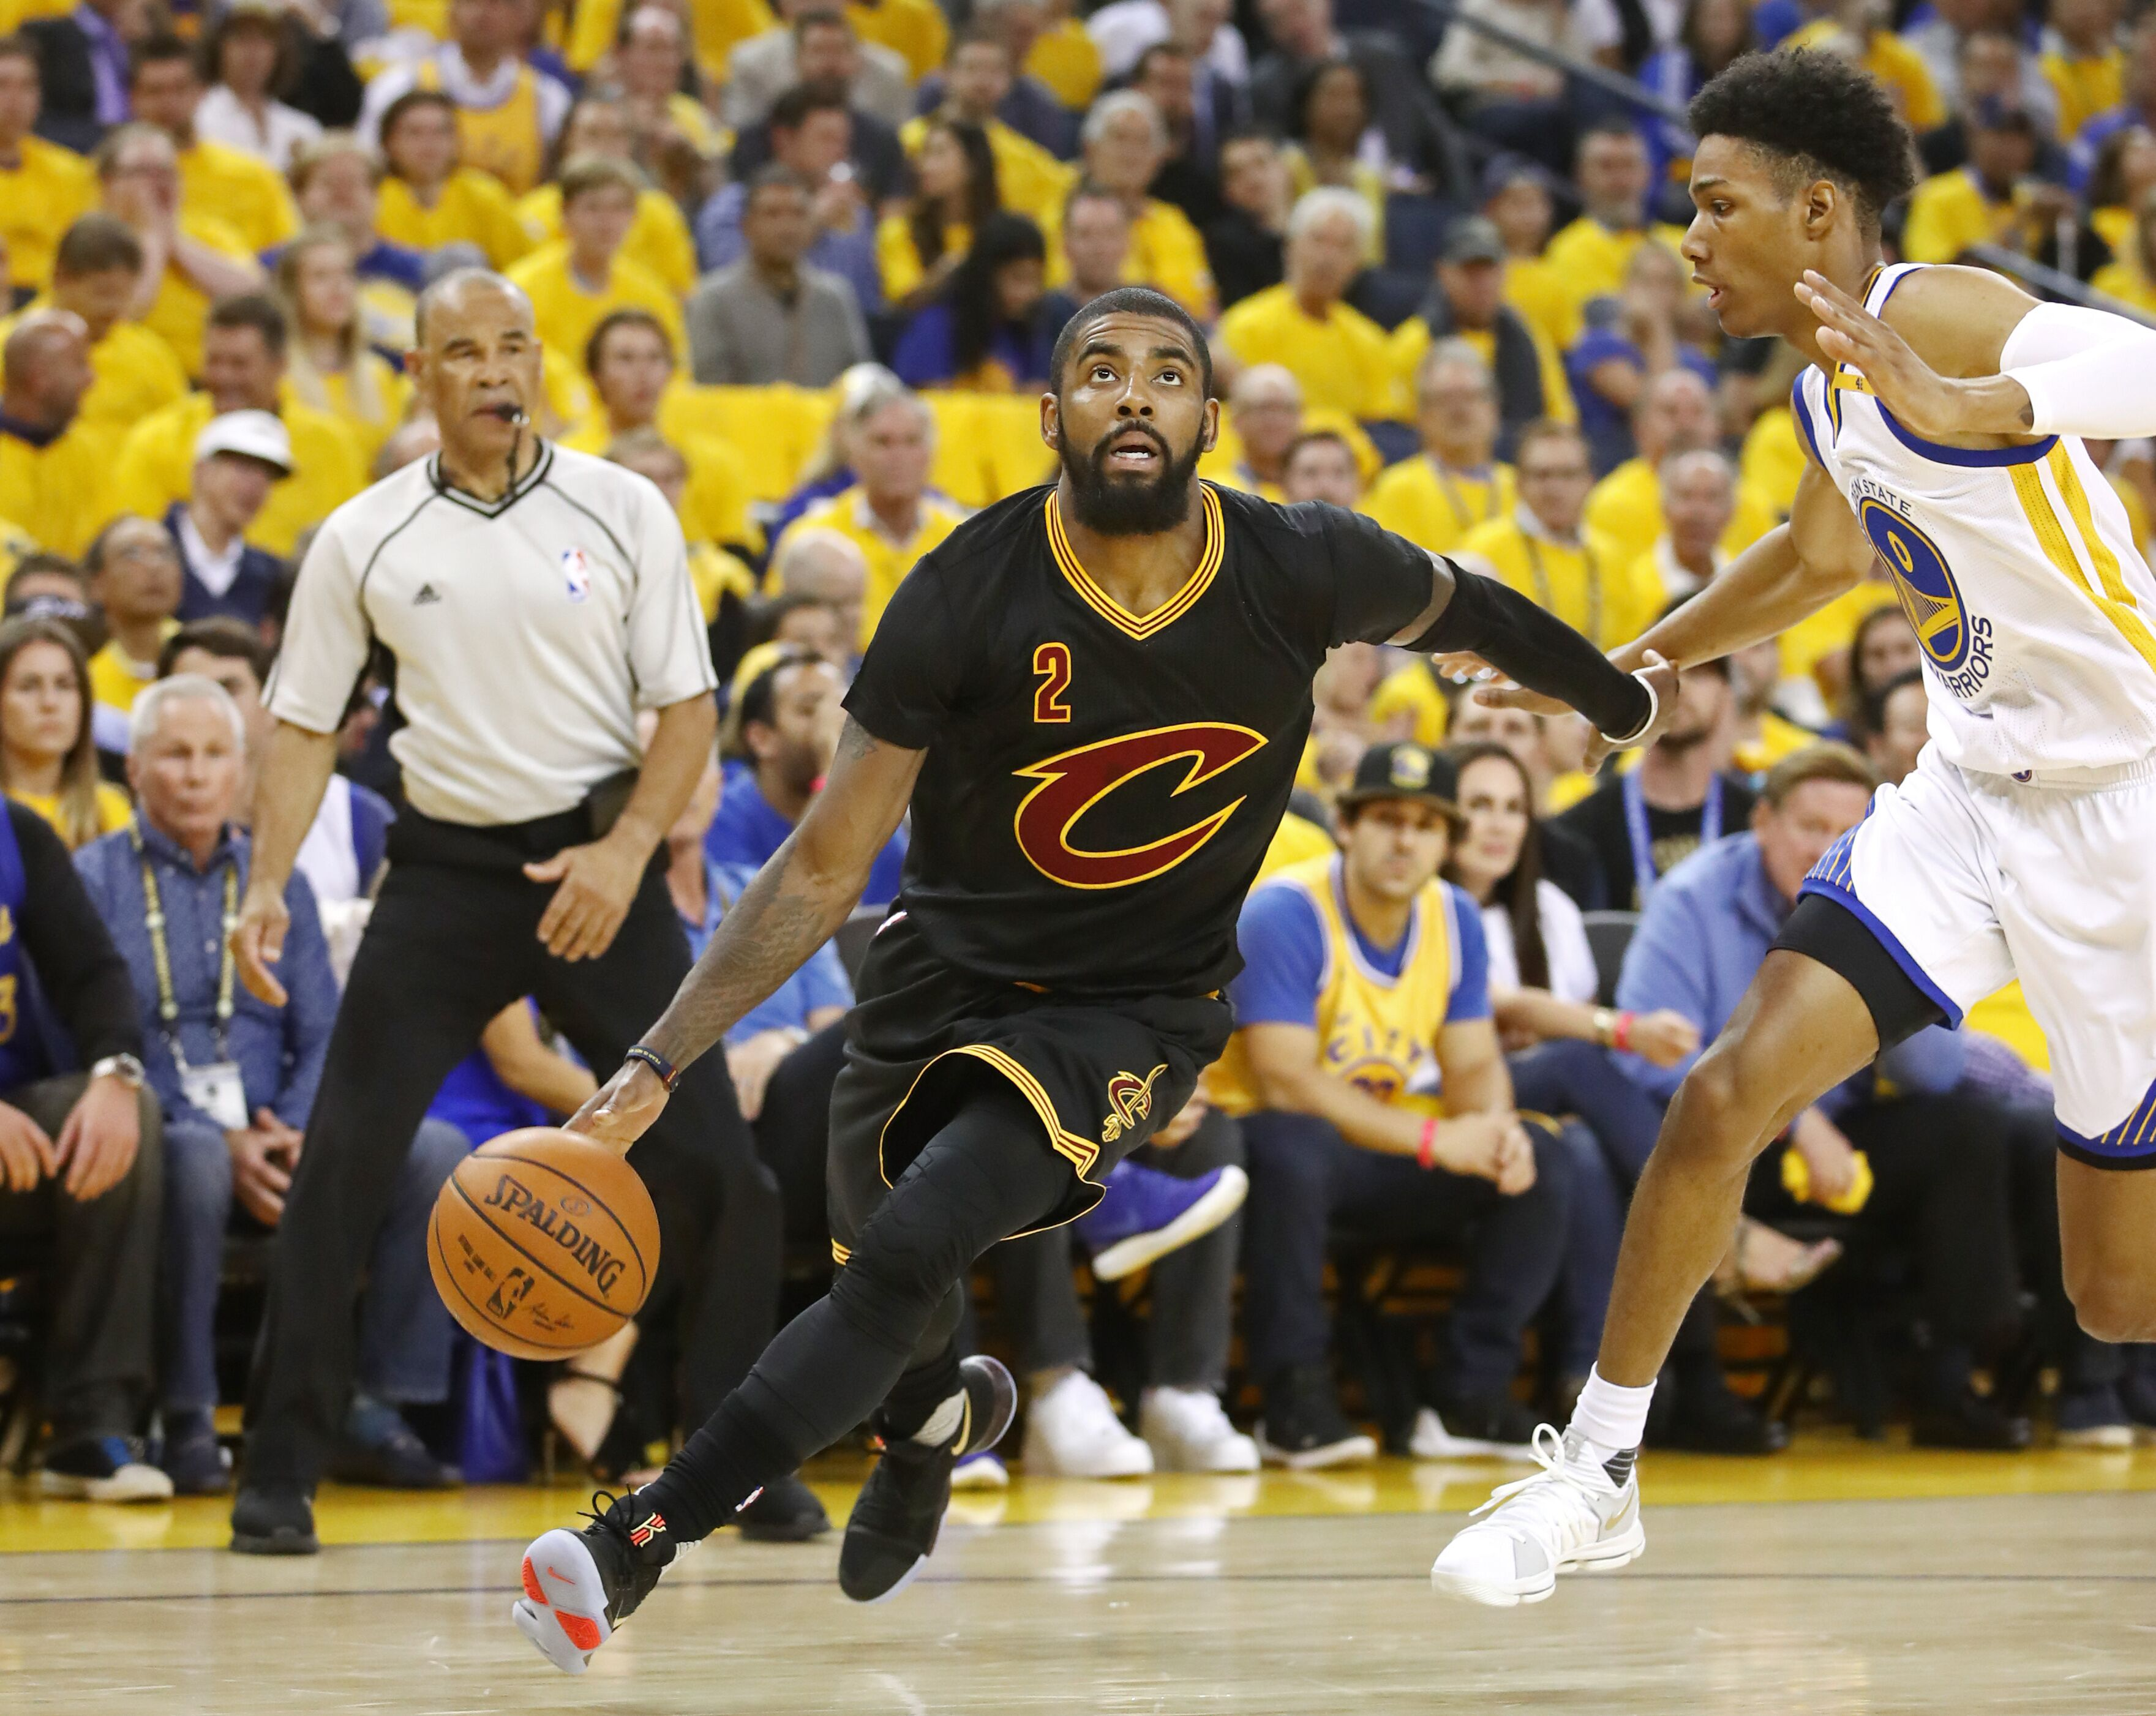 NBA Rumors: Kyrie Irving has asked the Cleveland Cavaliers to trade him